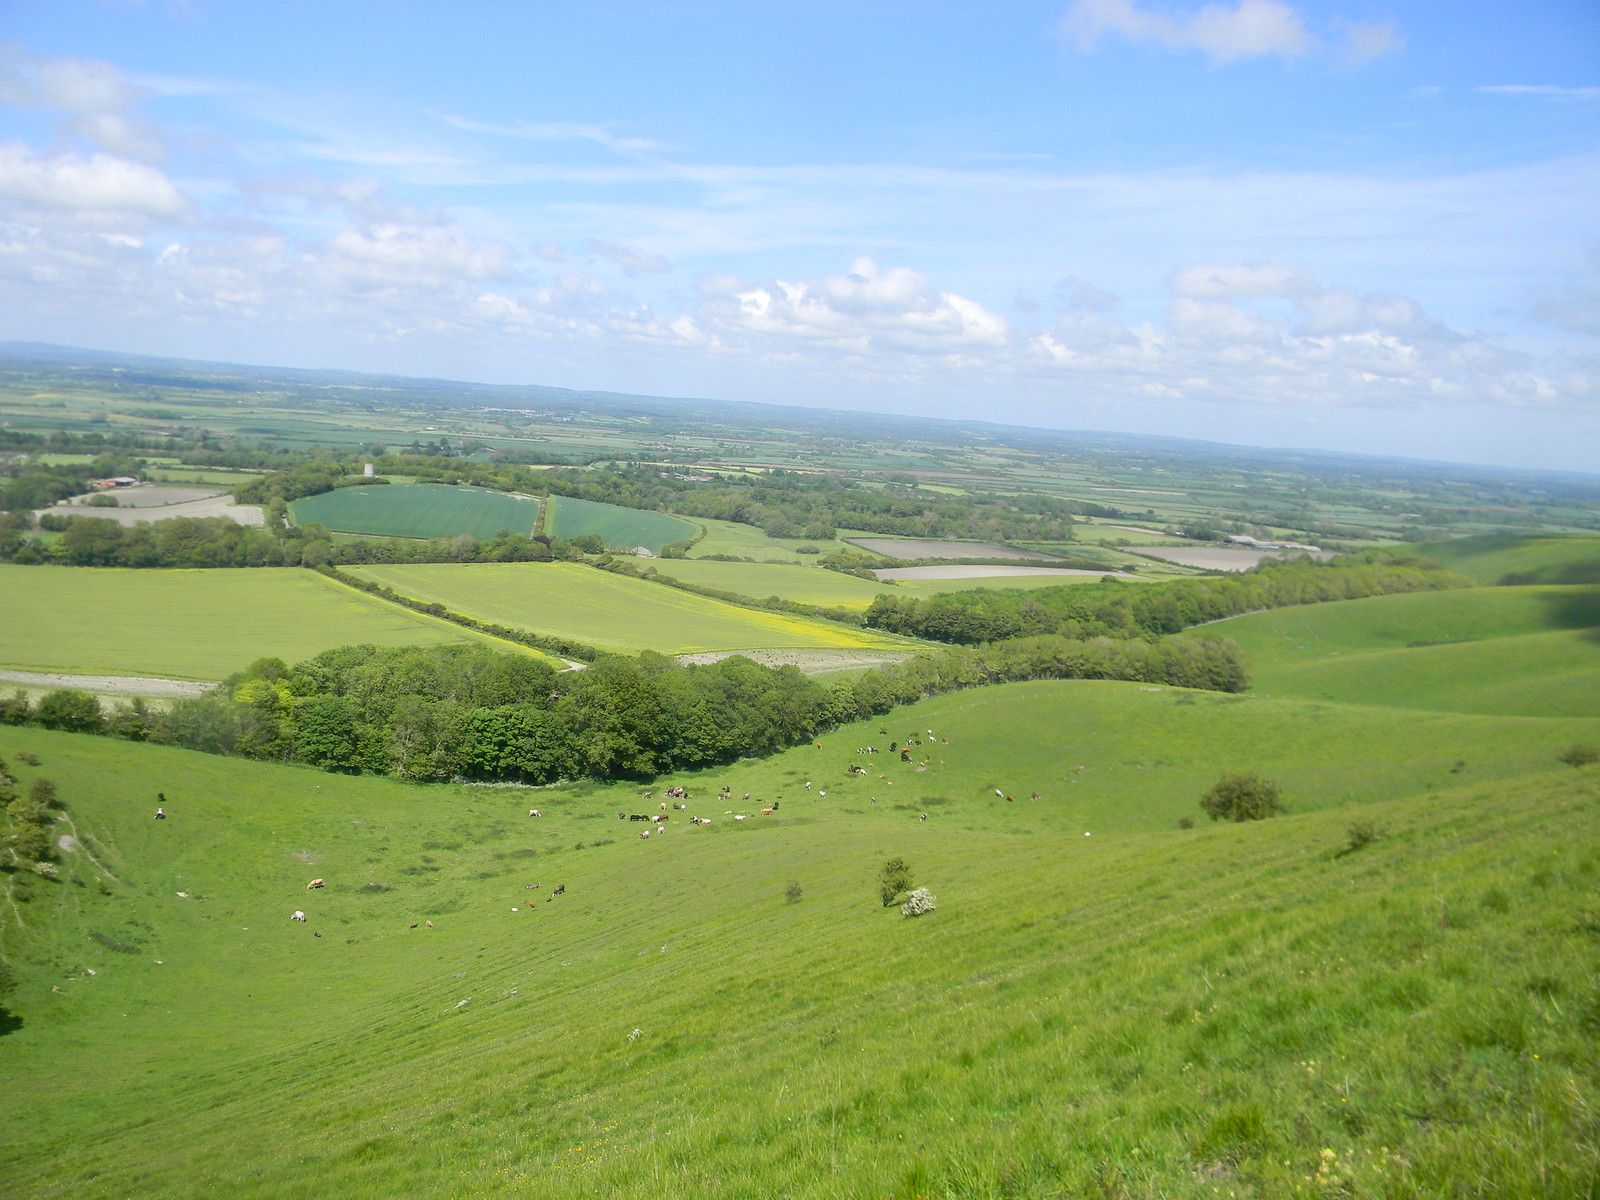 The view down Lewes Circular via West Firle